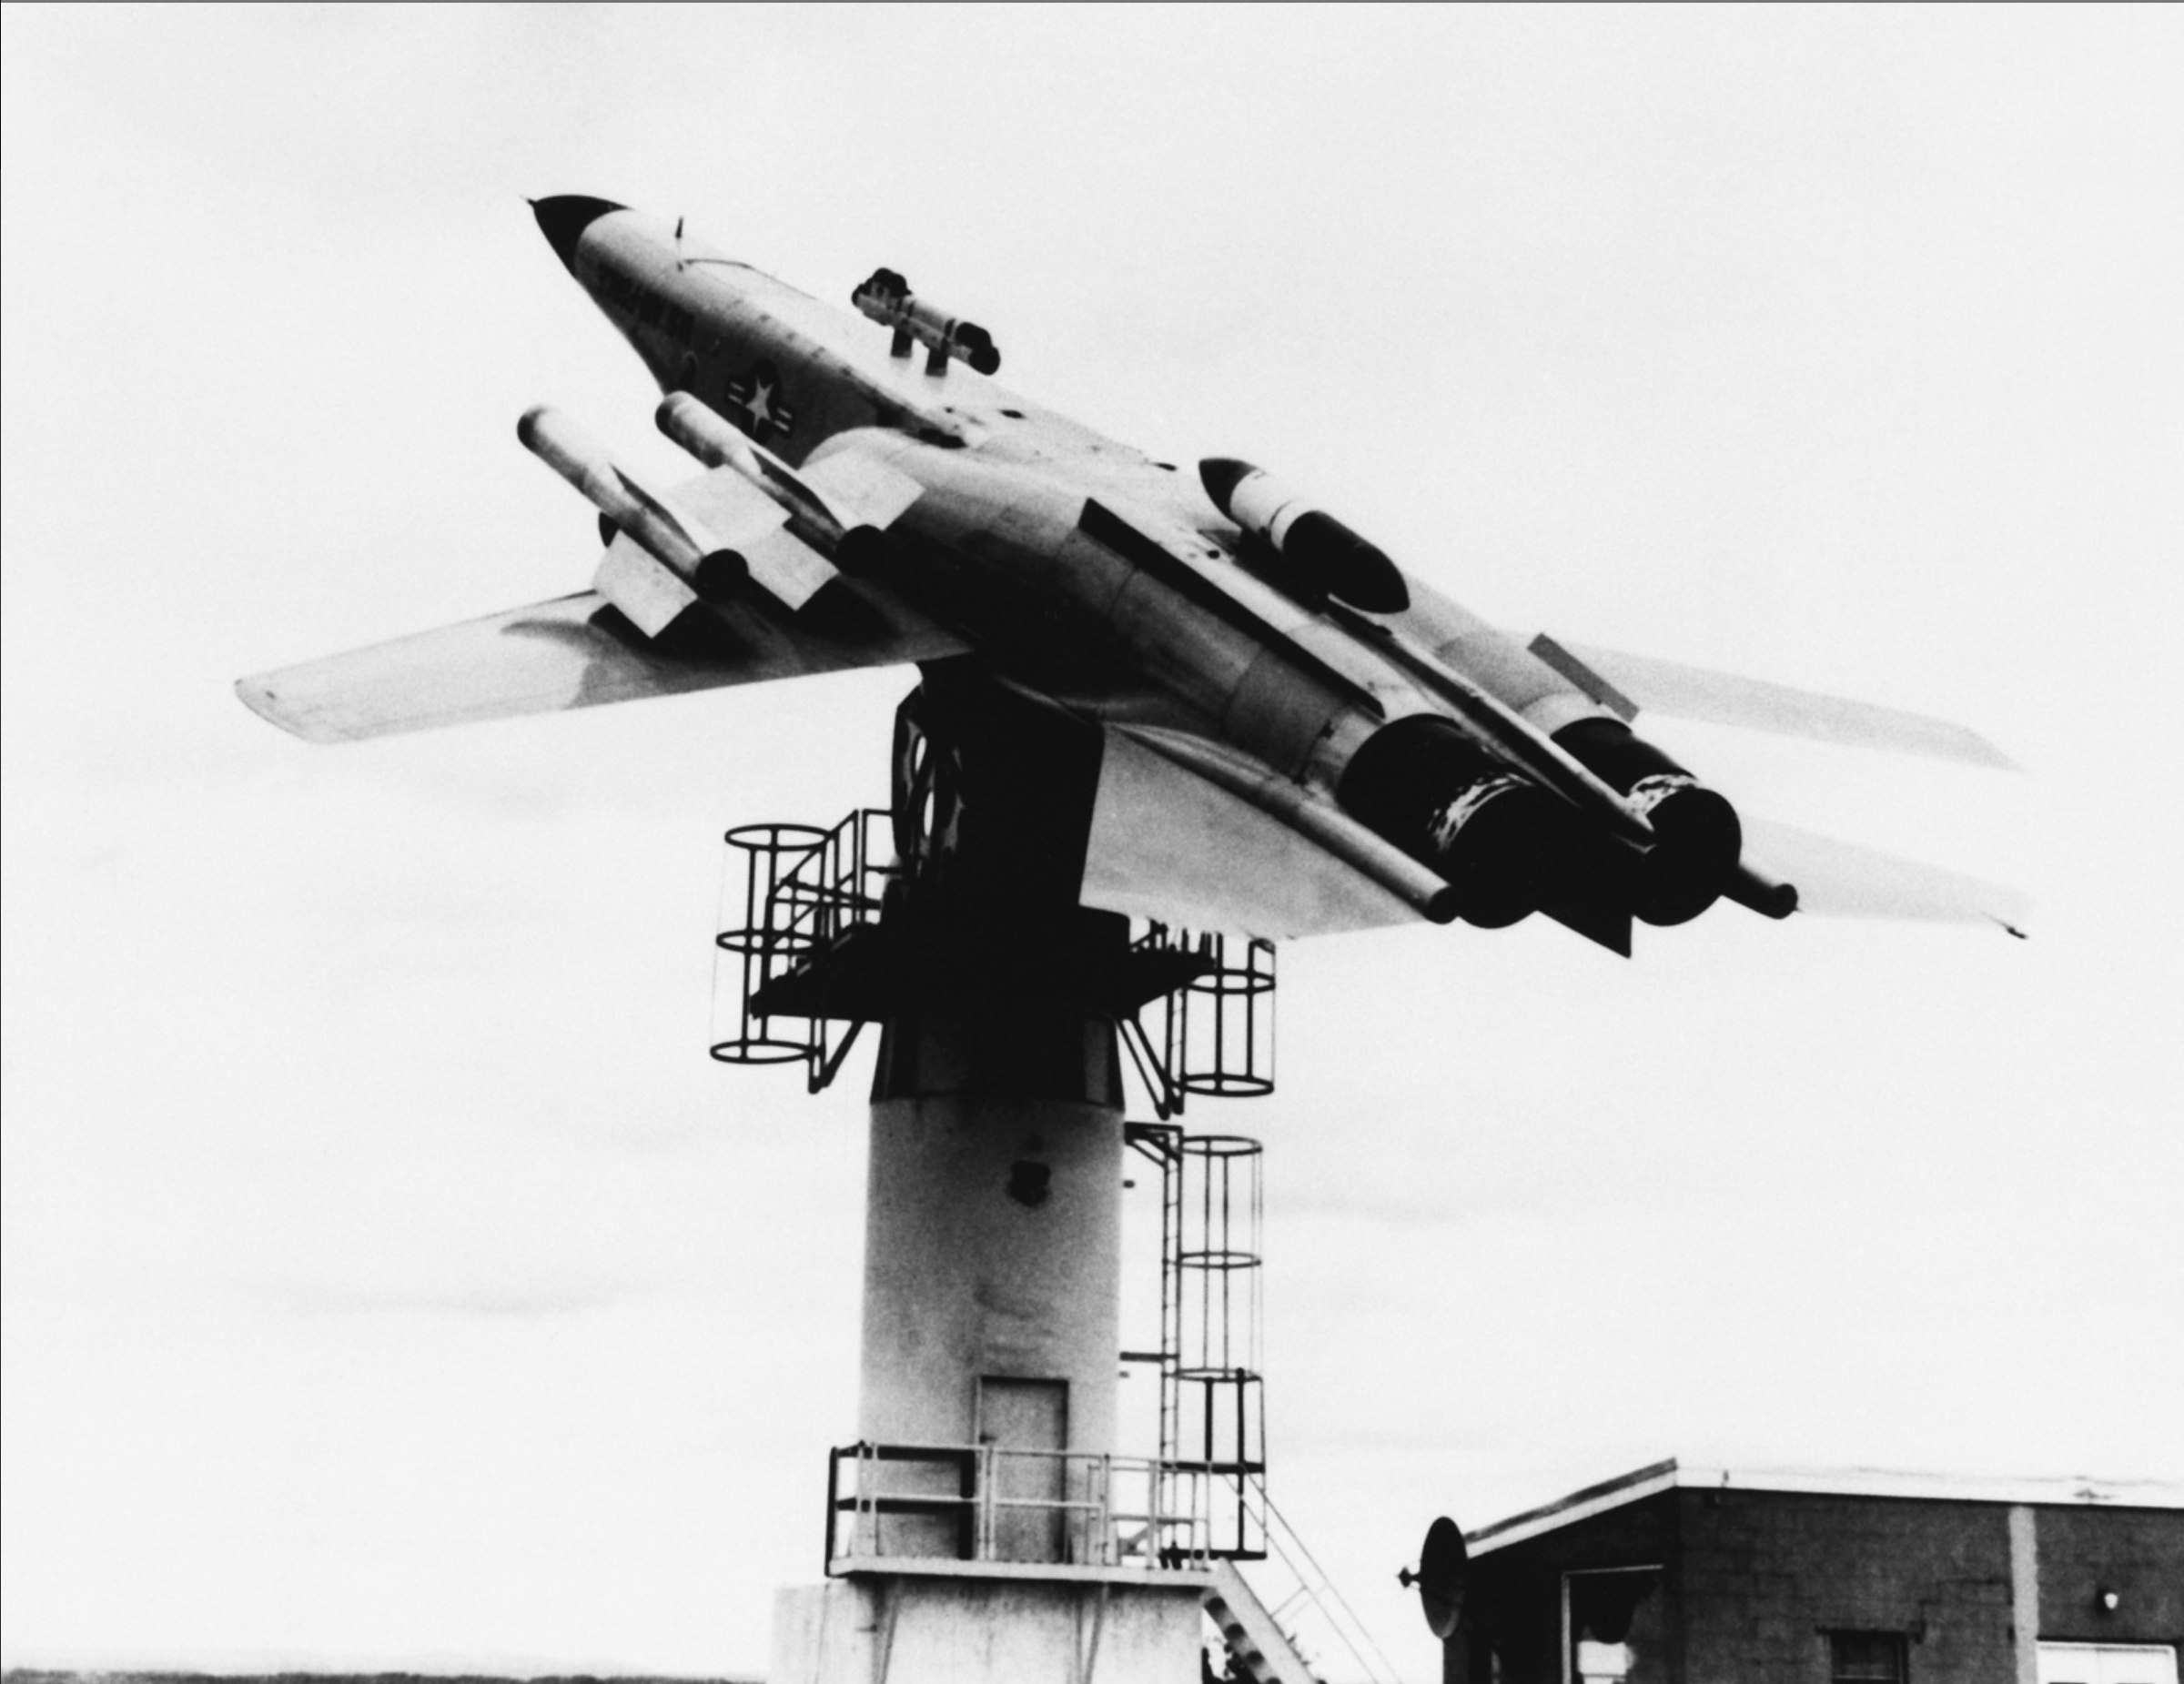 full_scale_model_of_f-111_fighter_aircraft_is_mounted.png